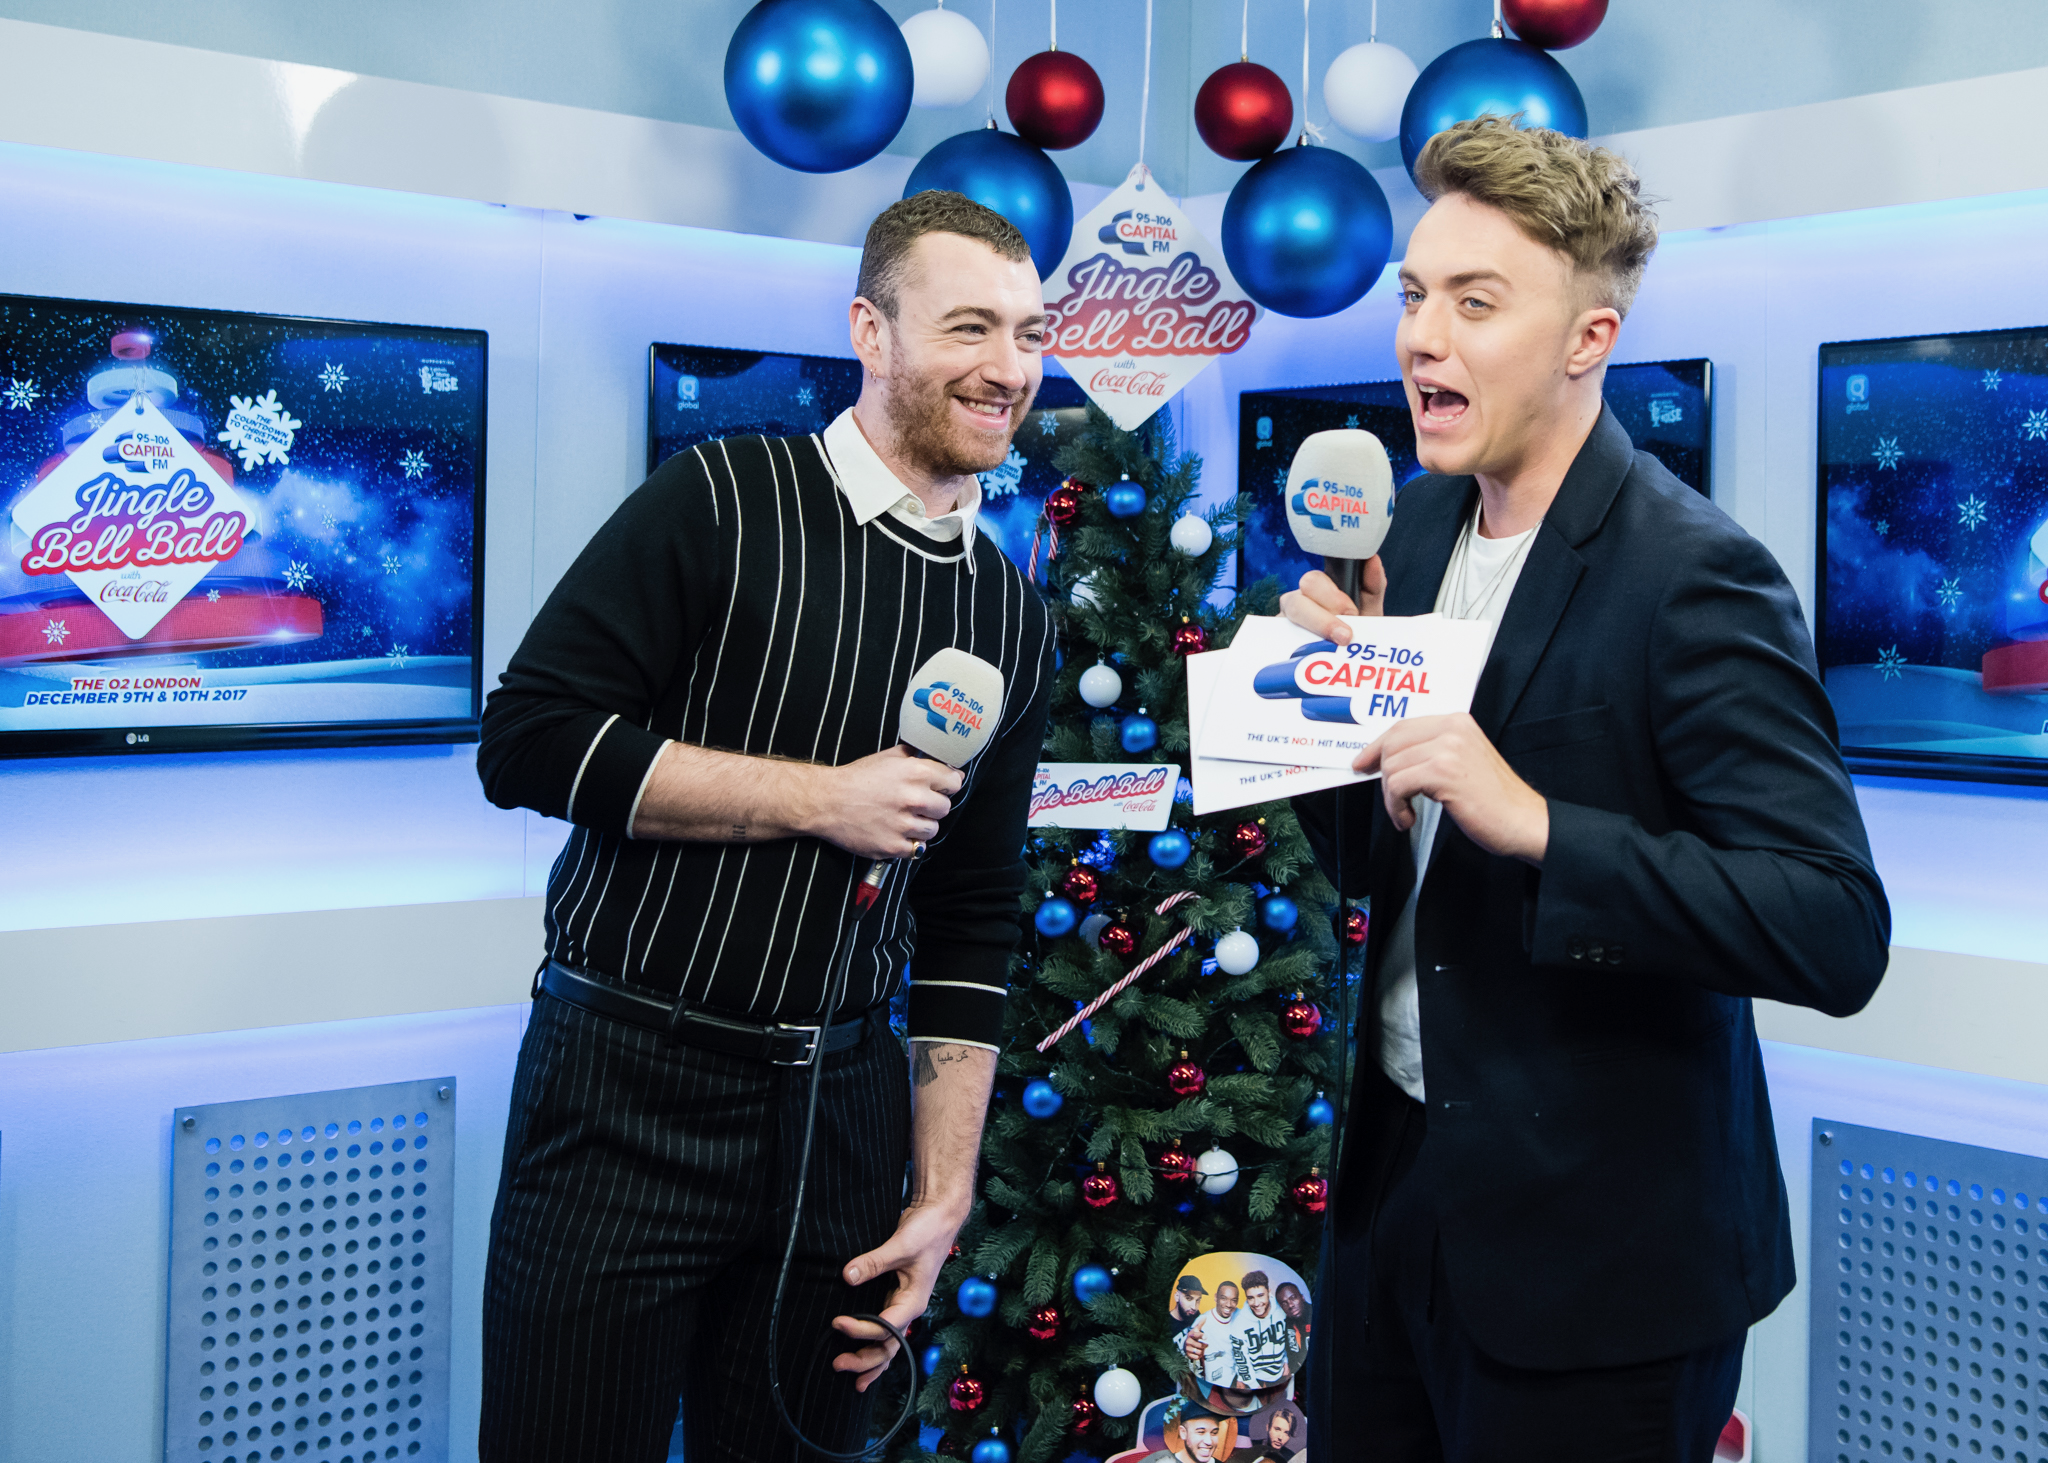 Sam Smith with Roman Kemp